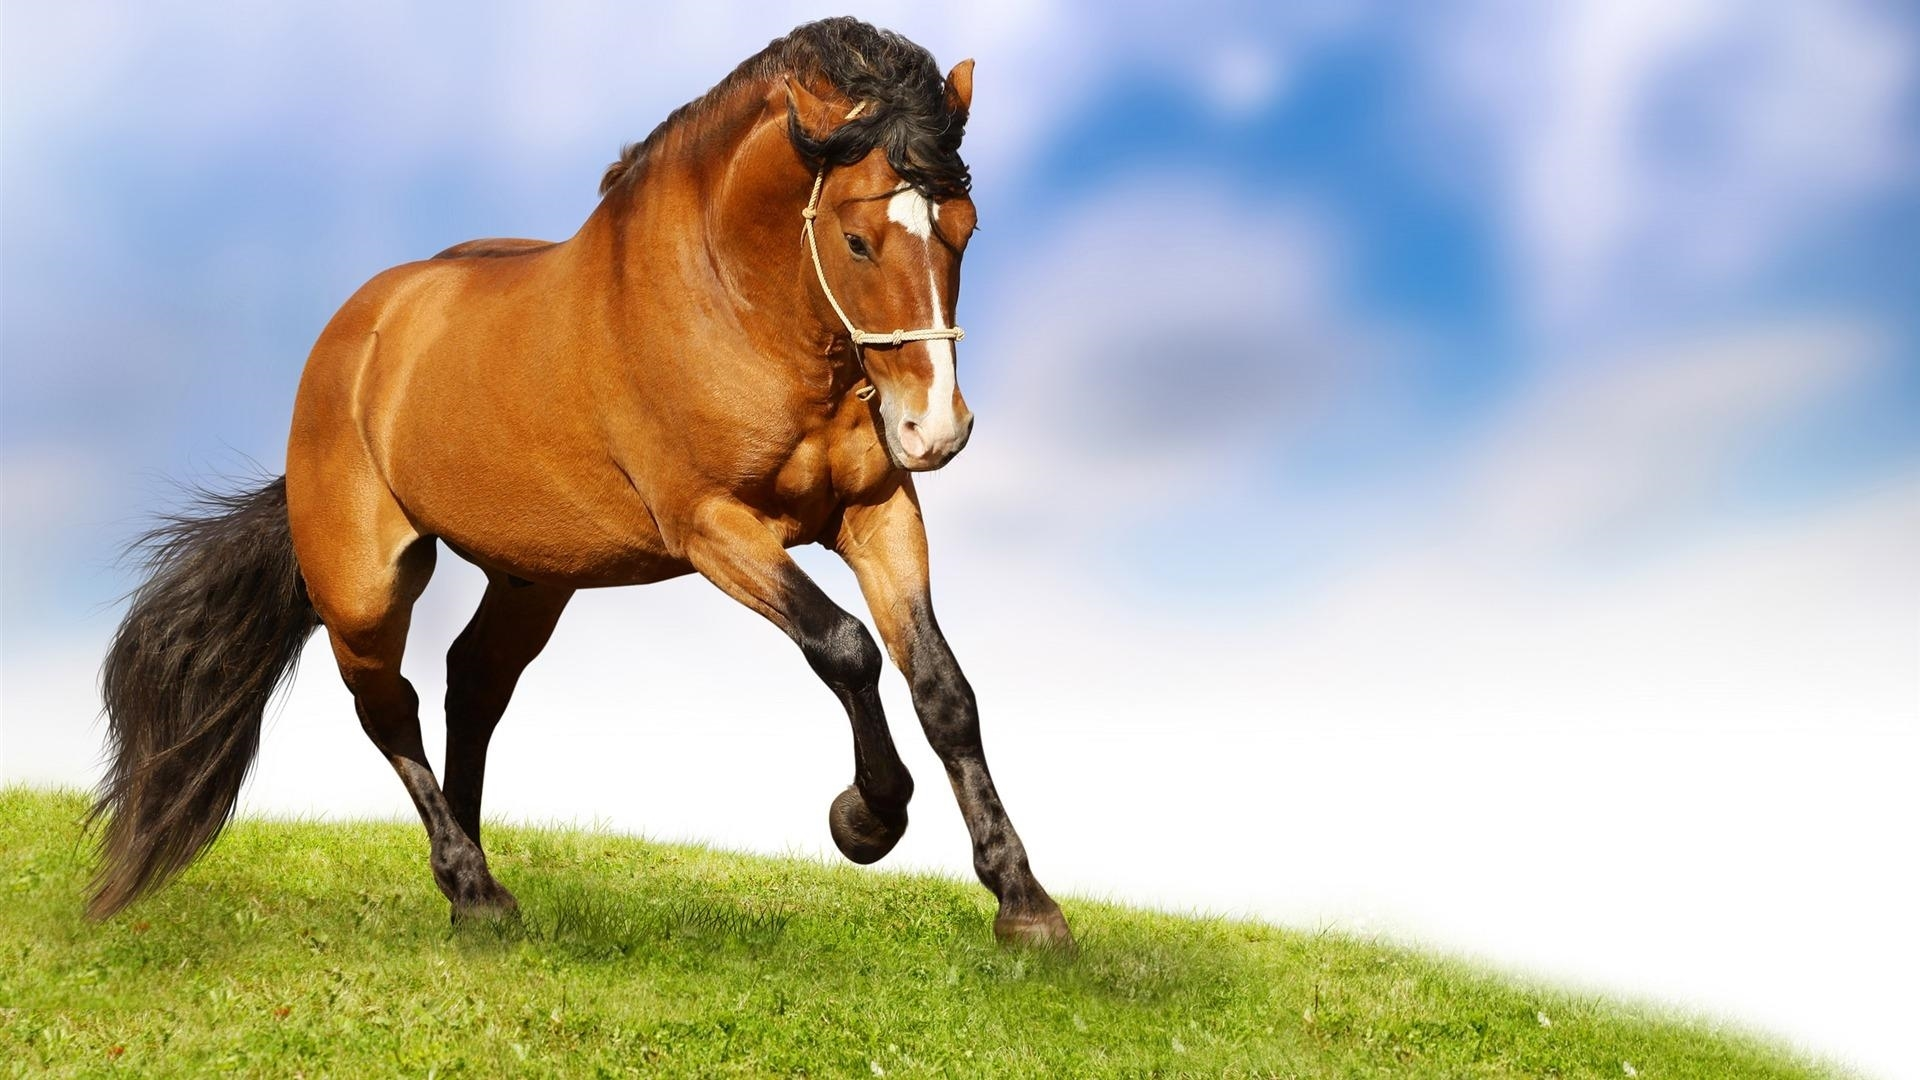 horse new wallpapers